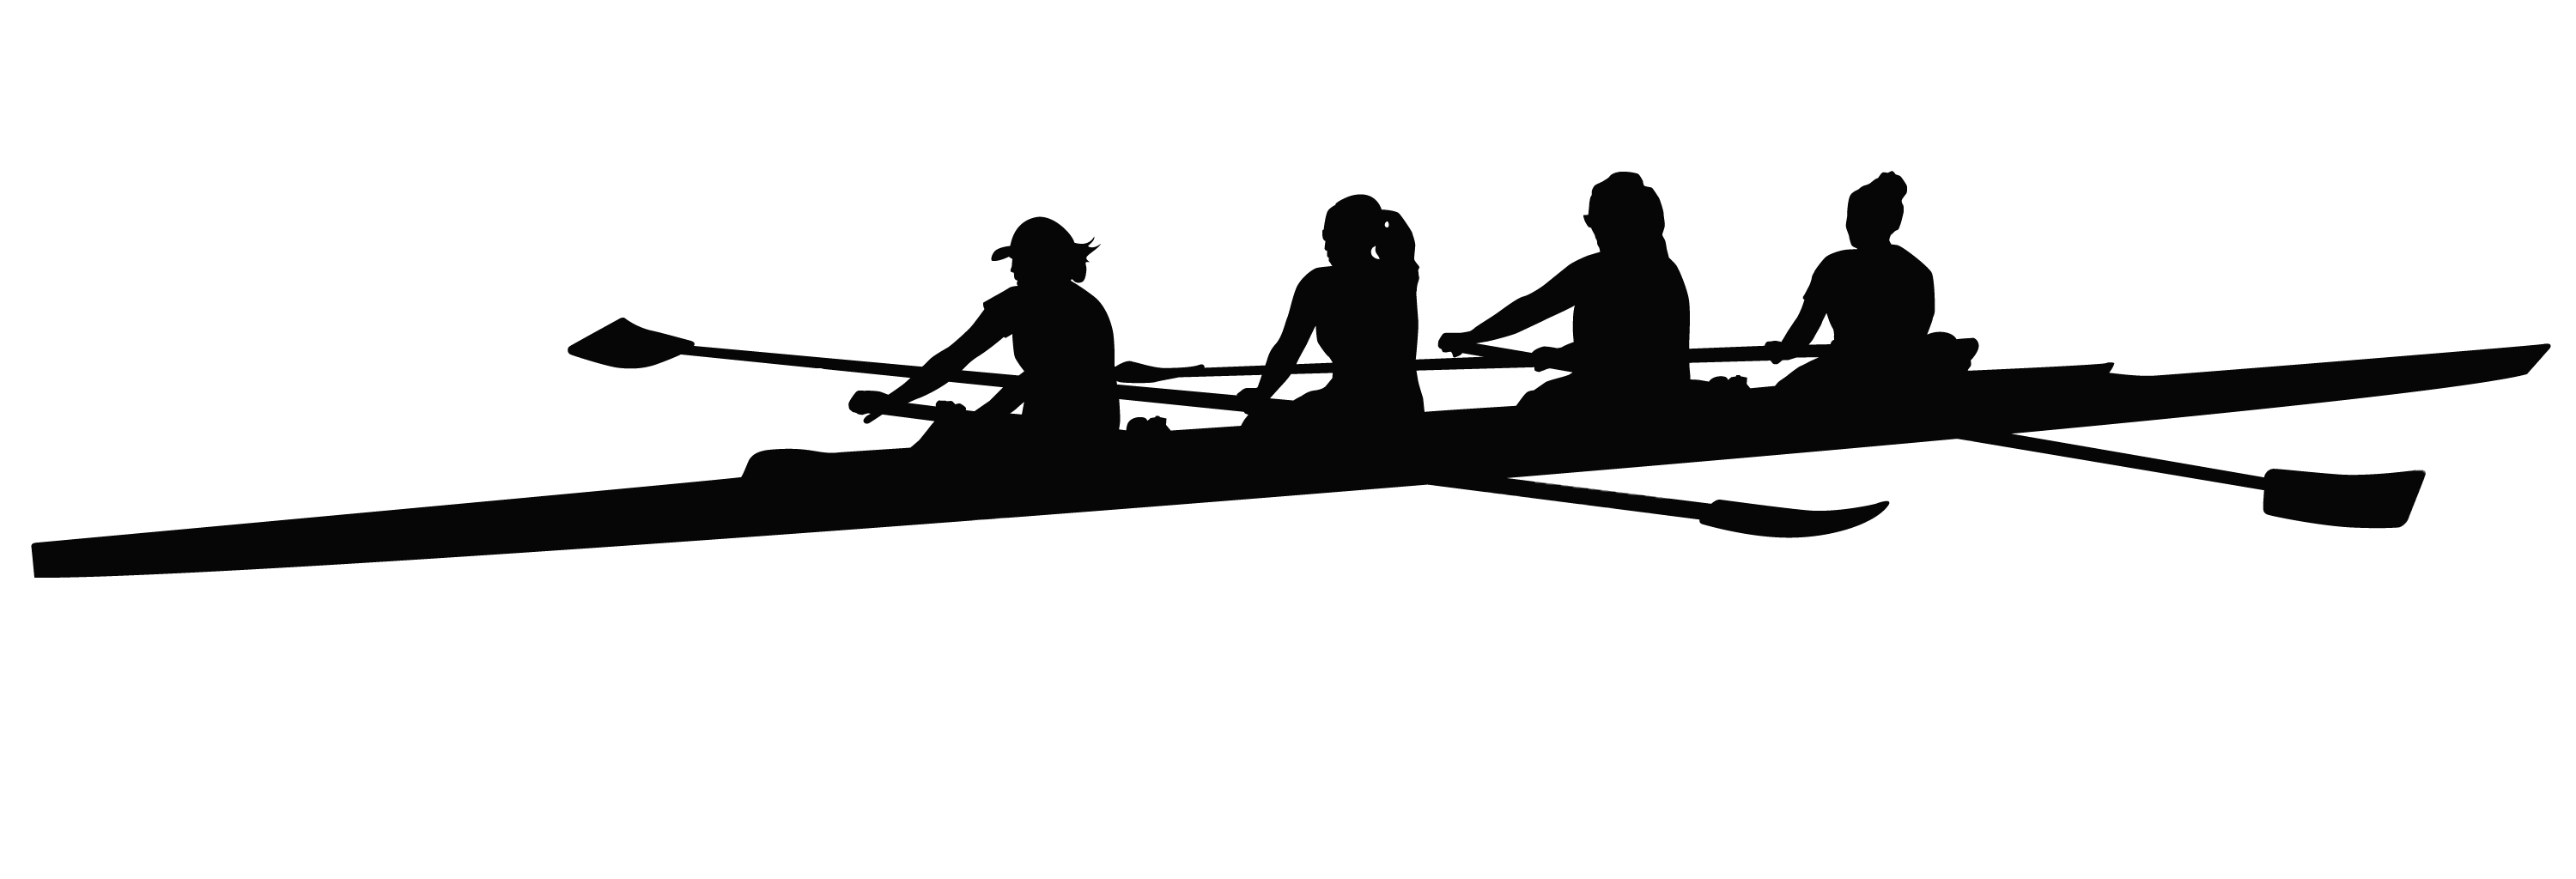 png royalty free stock Silhouette at getdrawings com. Vector boat rowing